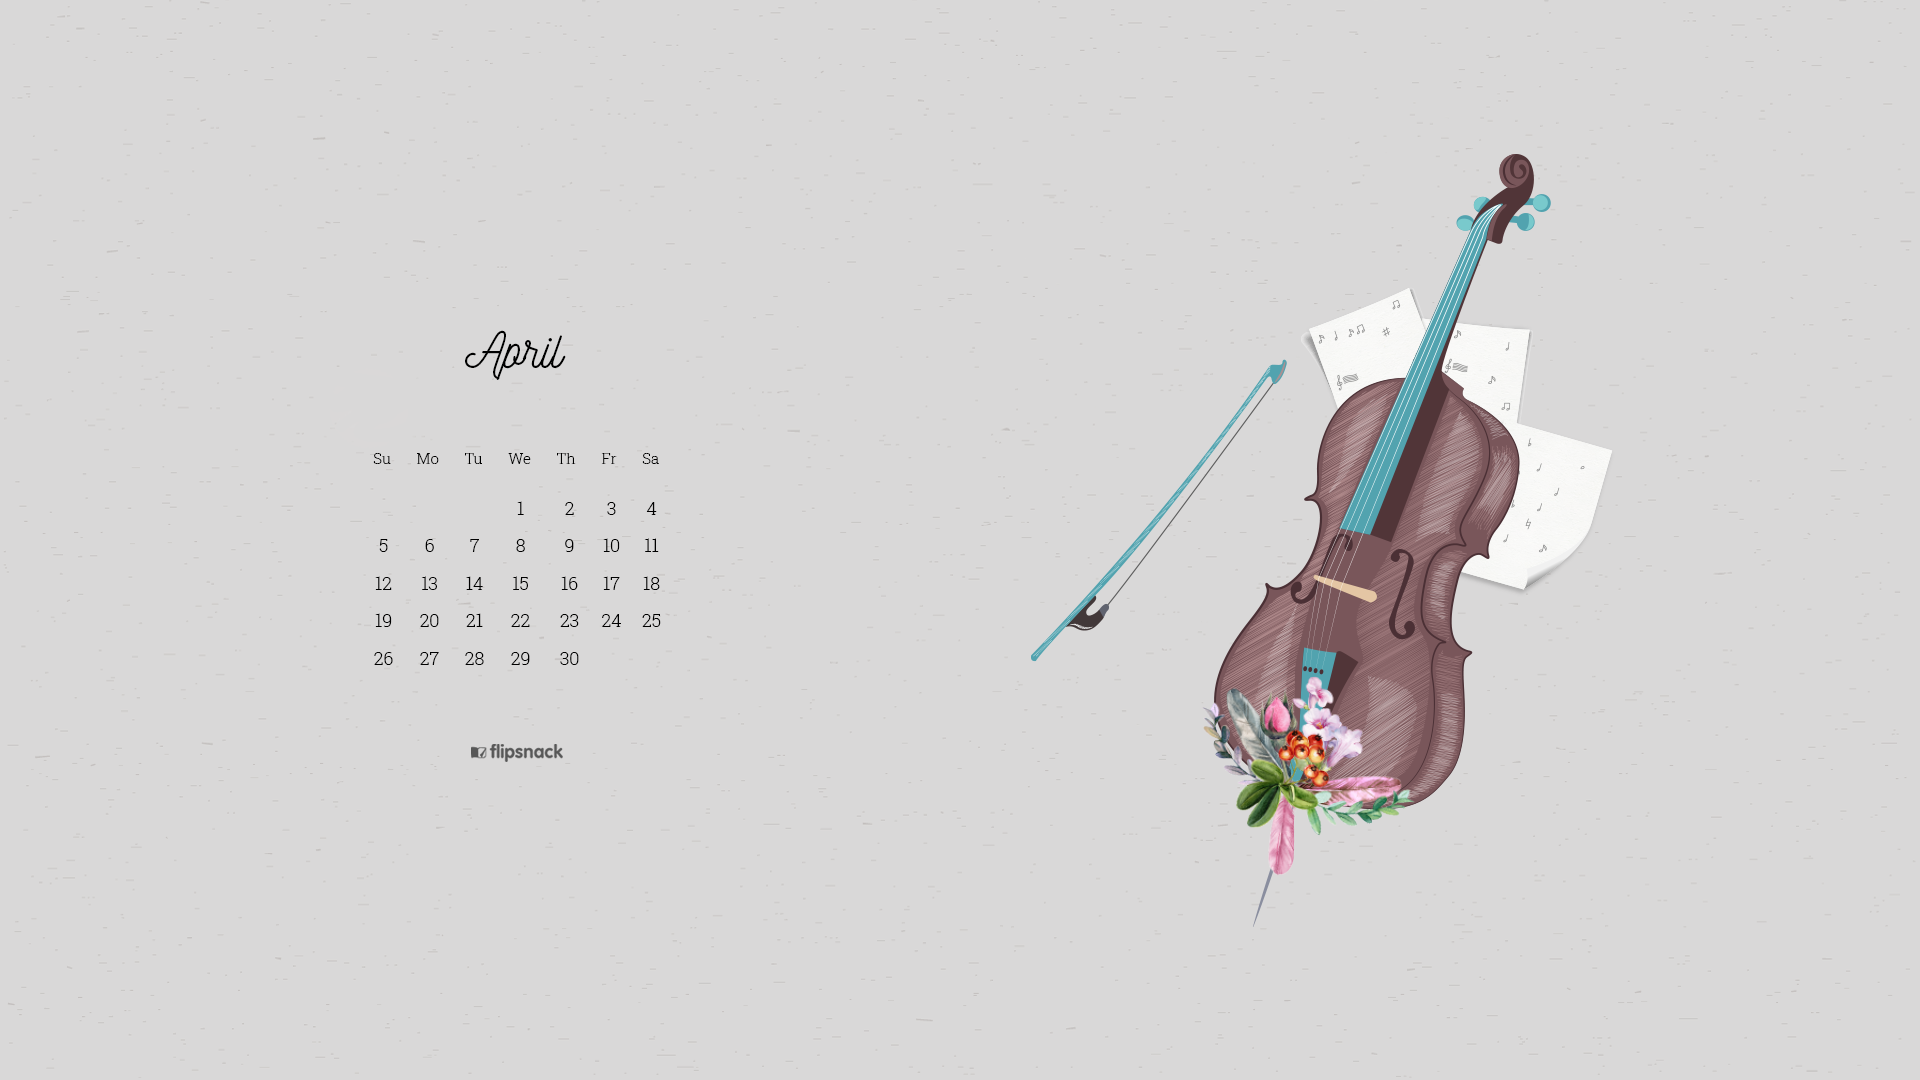 April 2020 wallpaper calendars